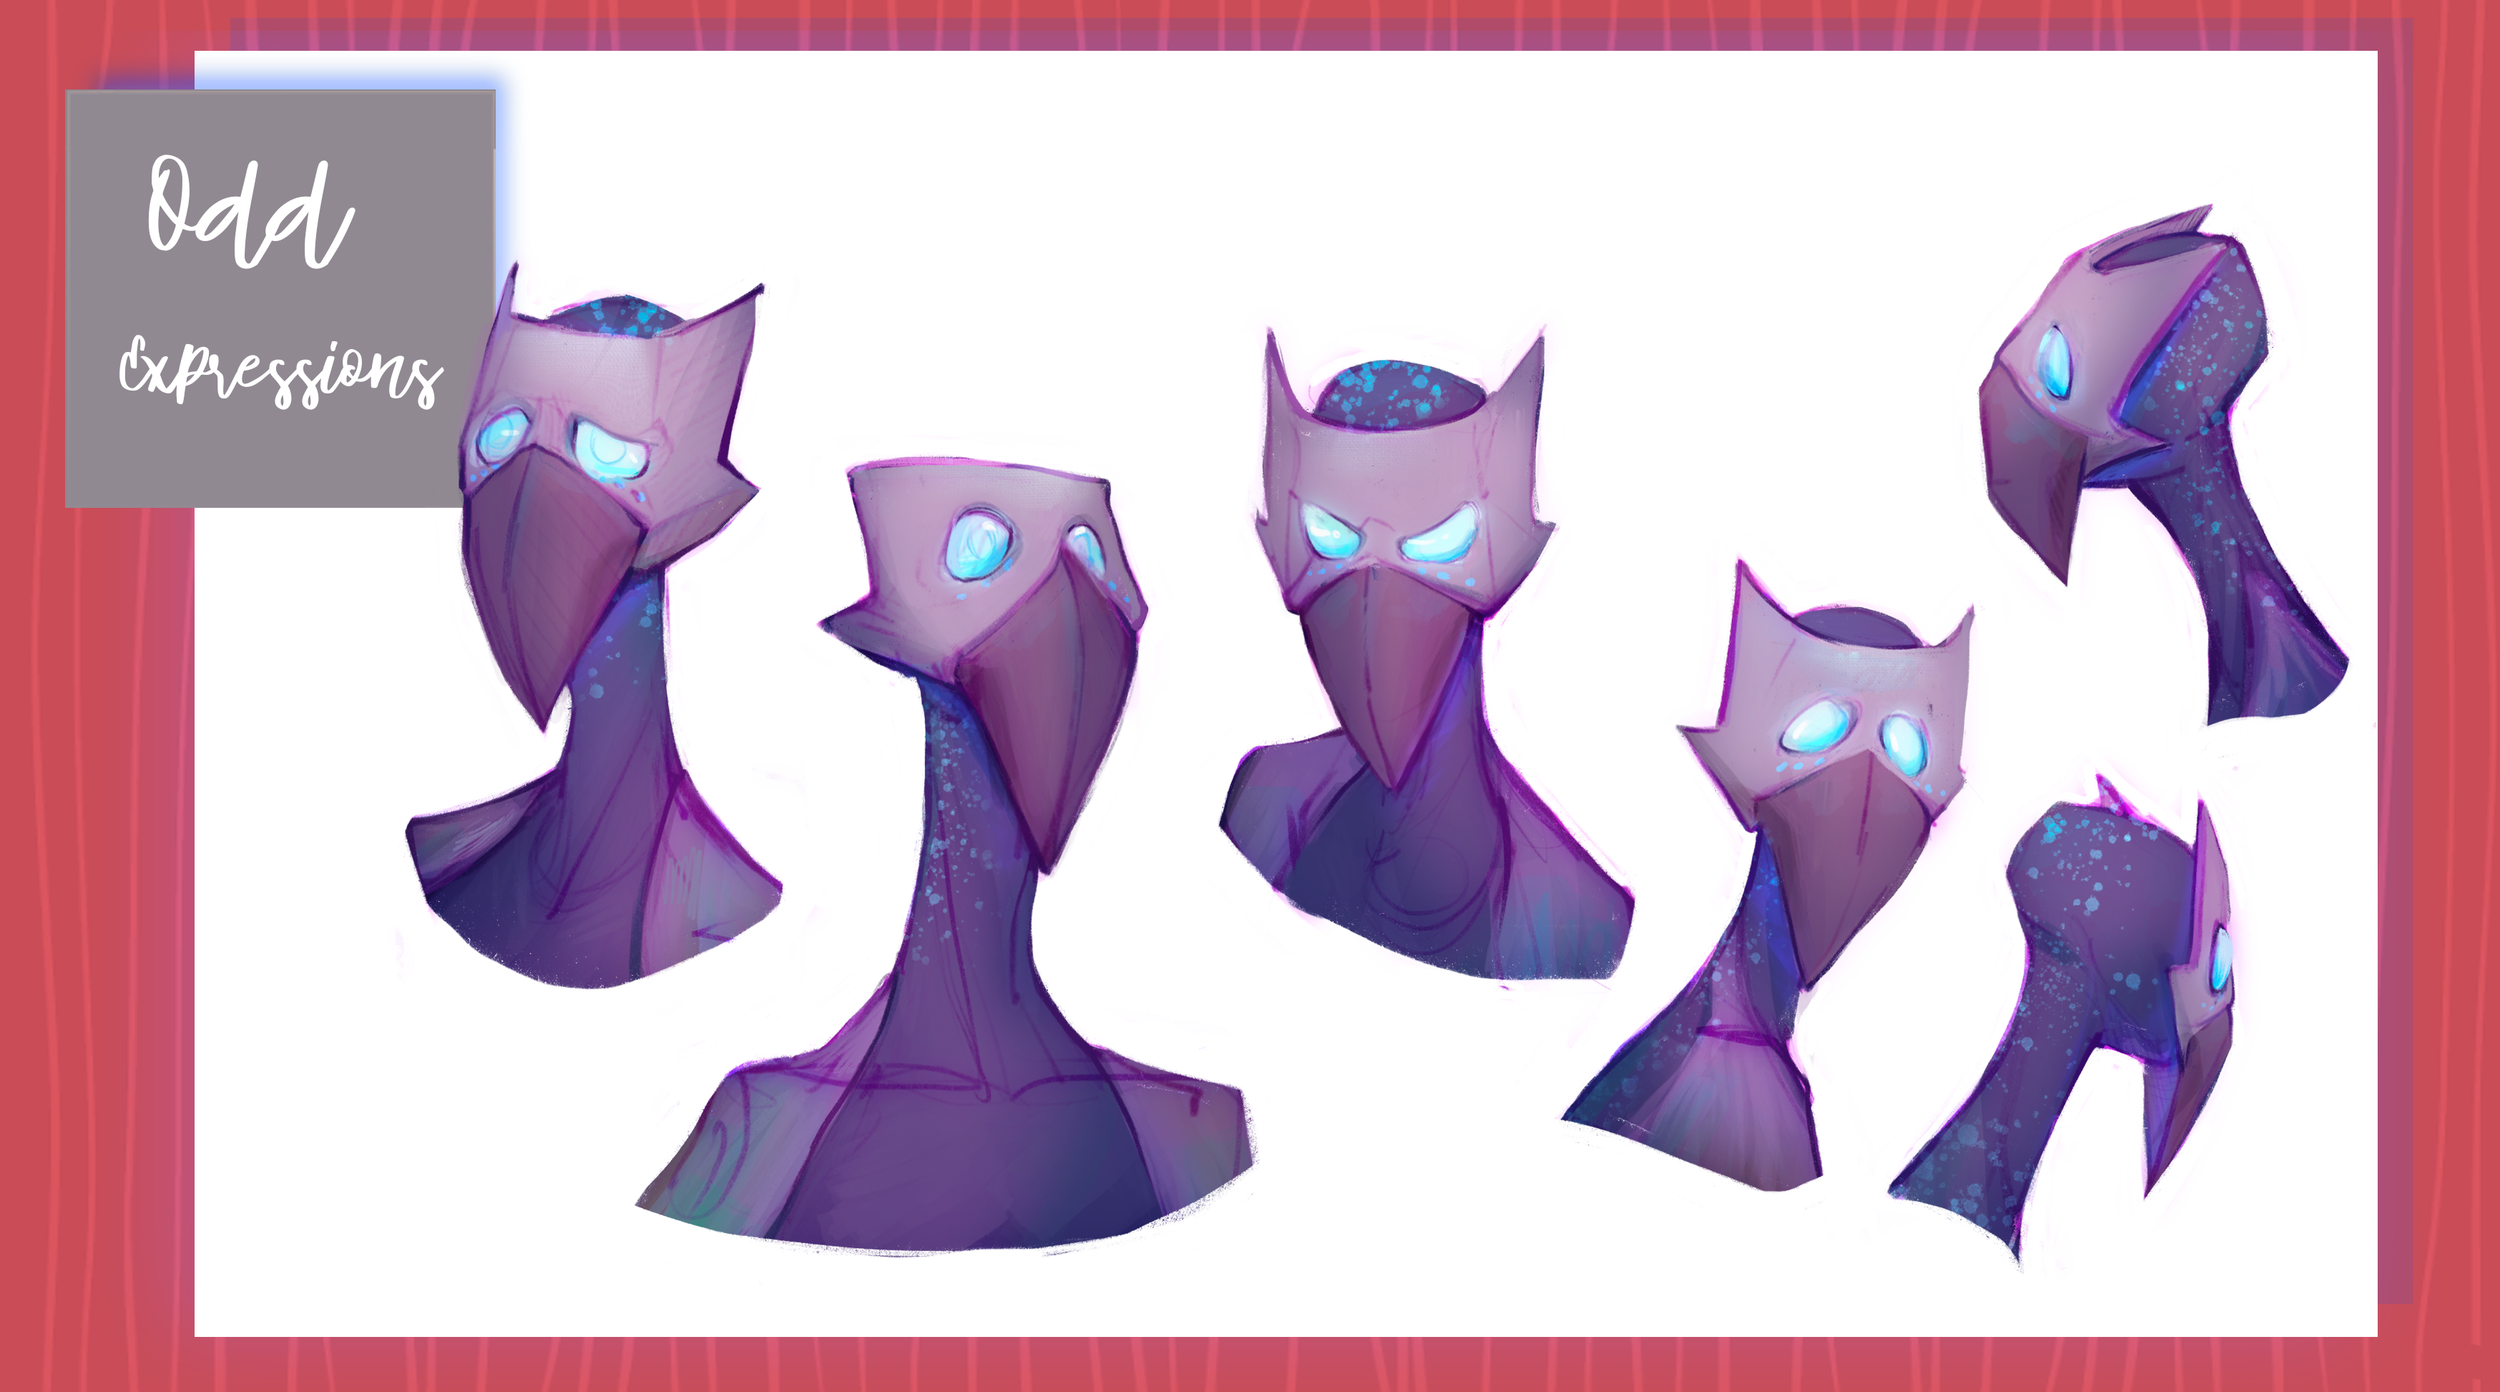 12_Odd_Expressions.png